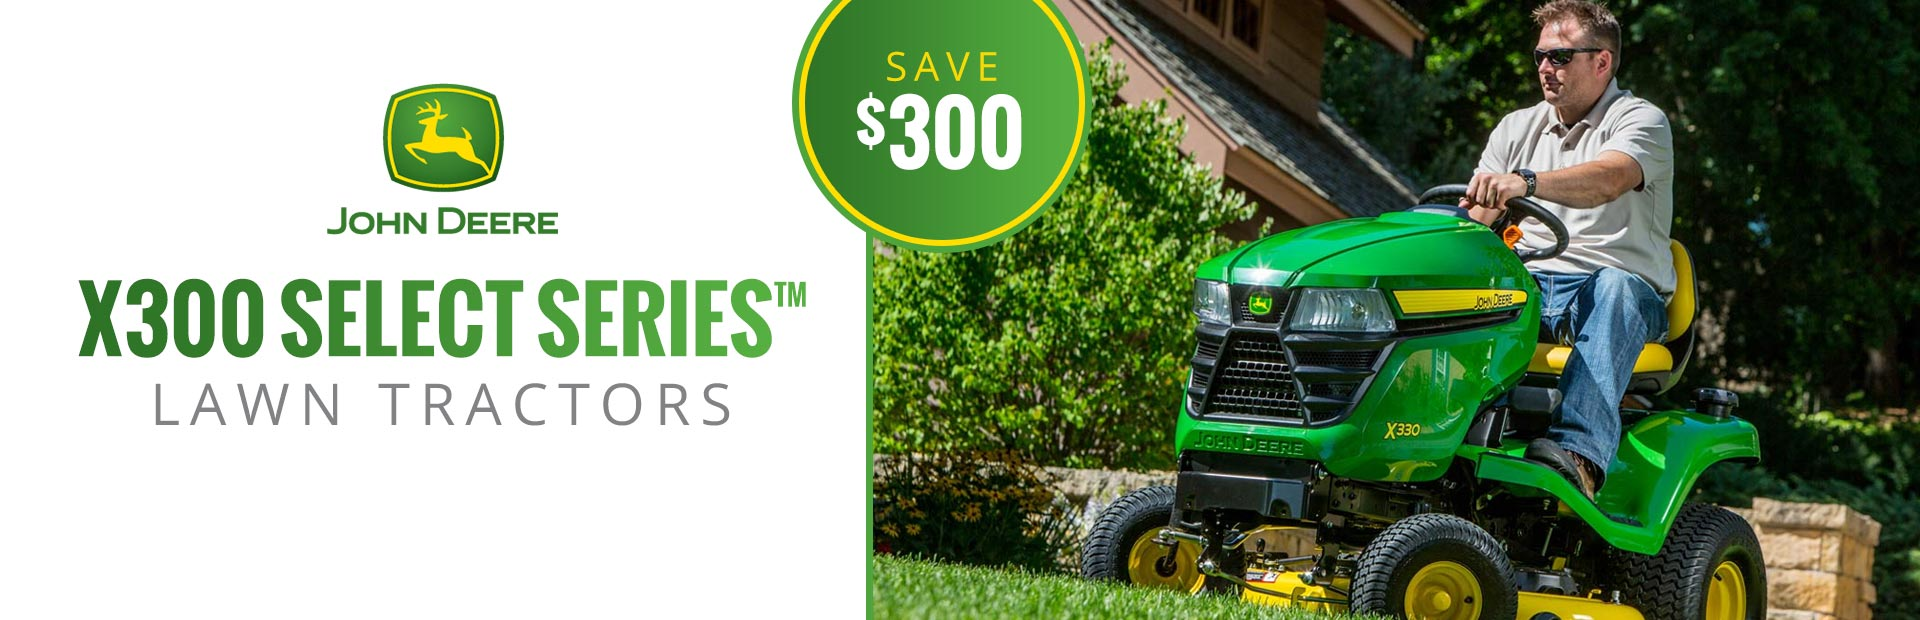 John Deere: X300 Select Series™ Lawn Tractors - Save $300